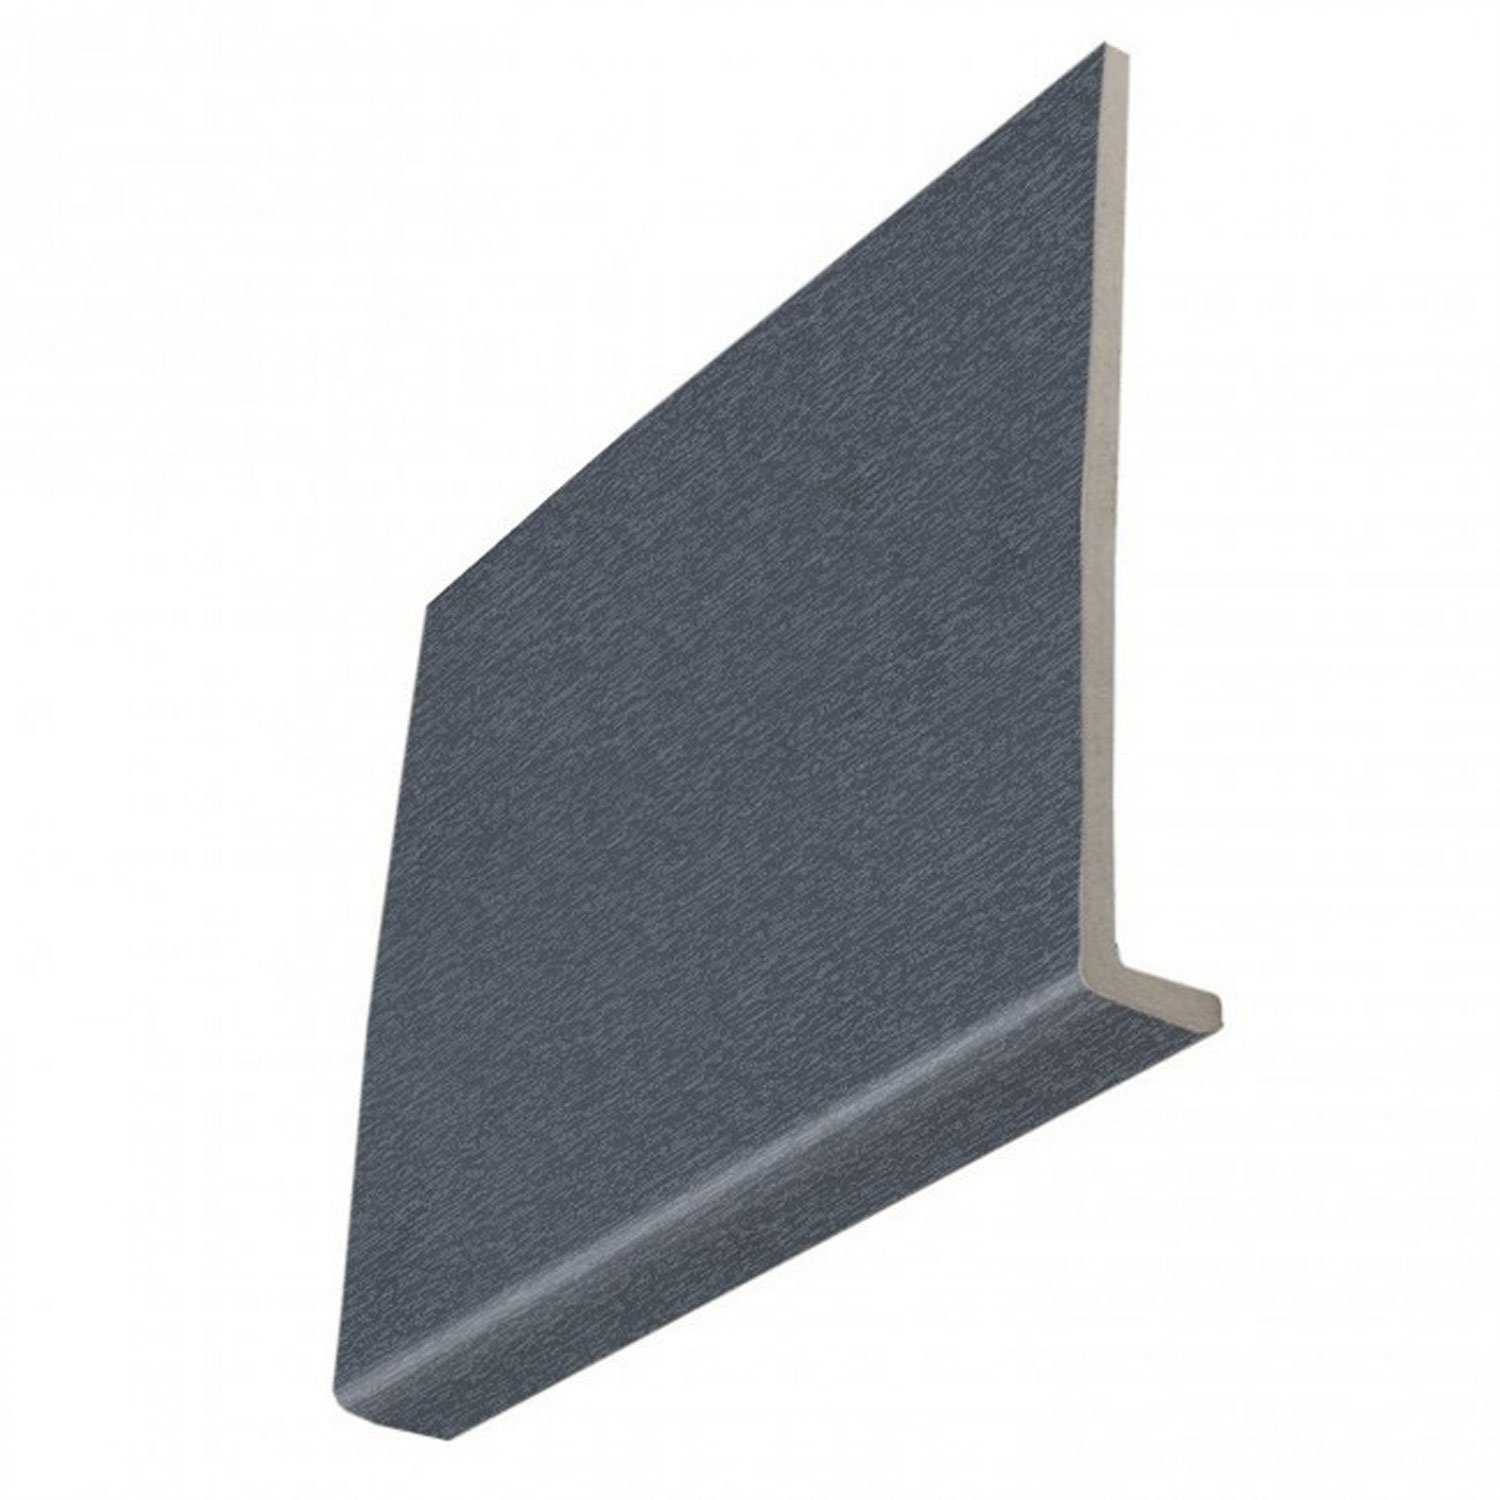 9mm Square Anthracite Grey Woodgrain Fascia Boards